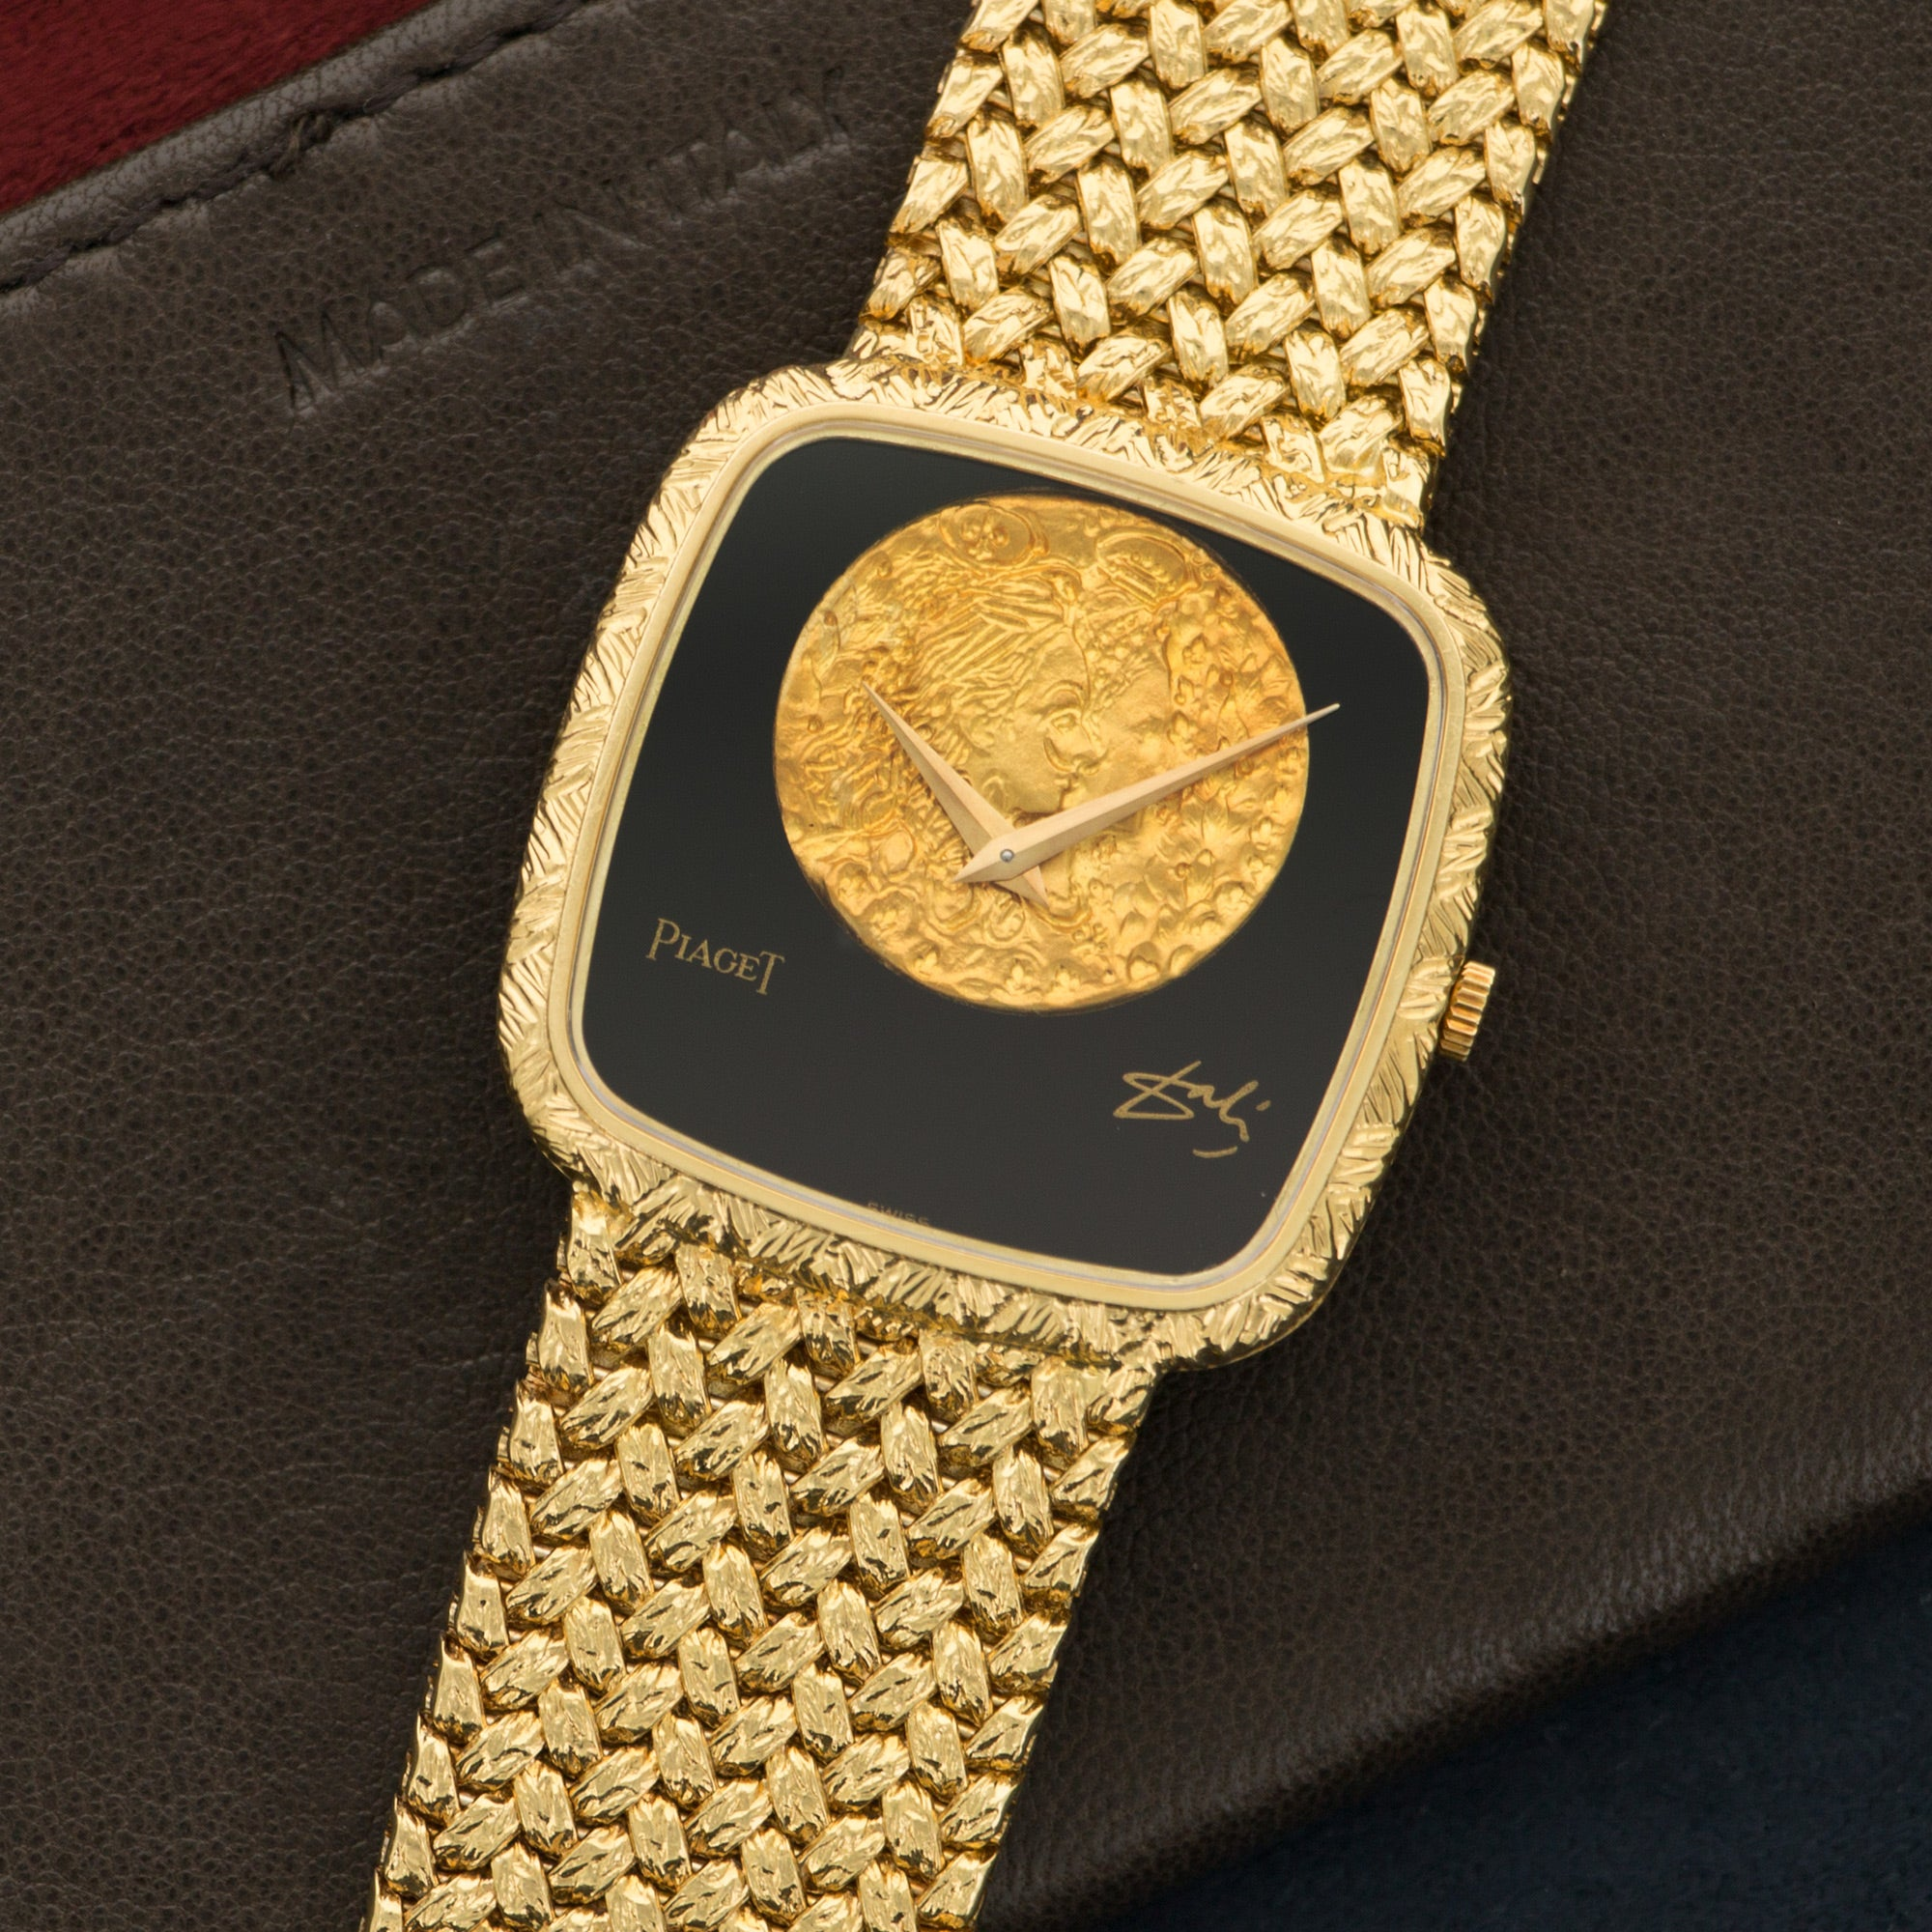 Piaget Vintage 9771 18k YG  Excellent Unisex 18k YG Onyx with Gold Coin 30mm Manual 1970s Yellow Gold (170mm) N/A